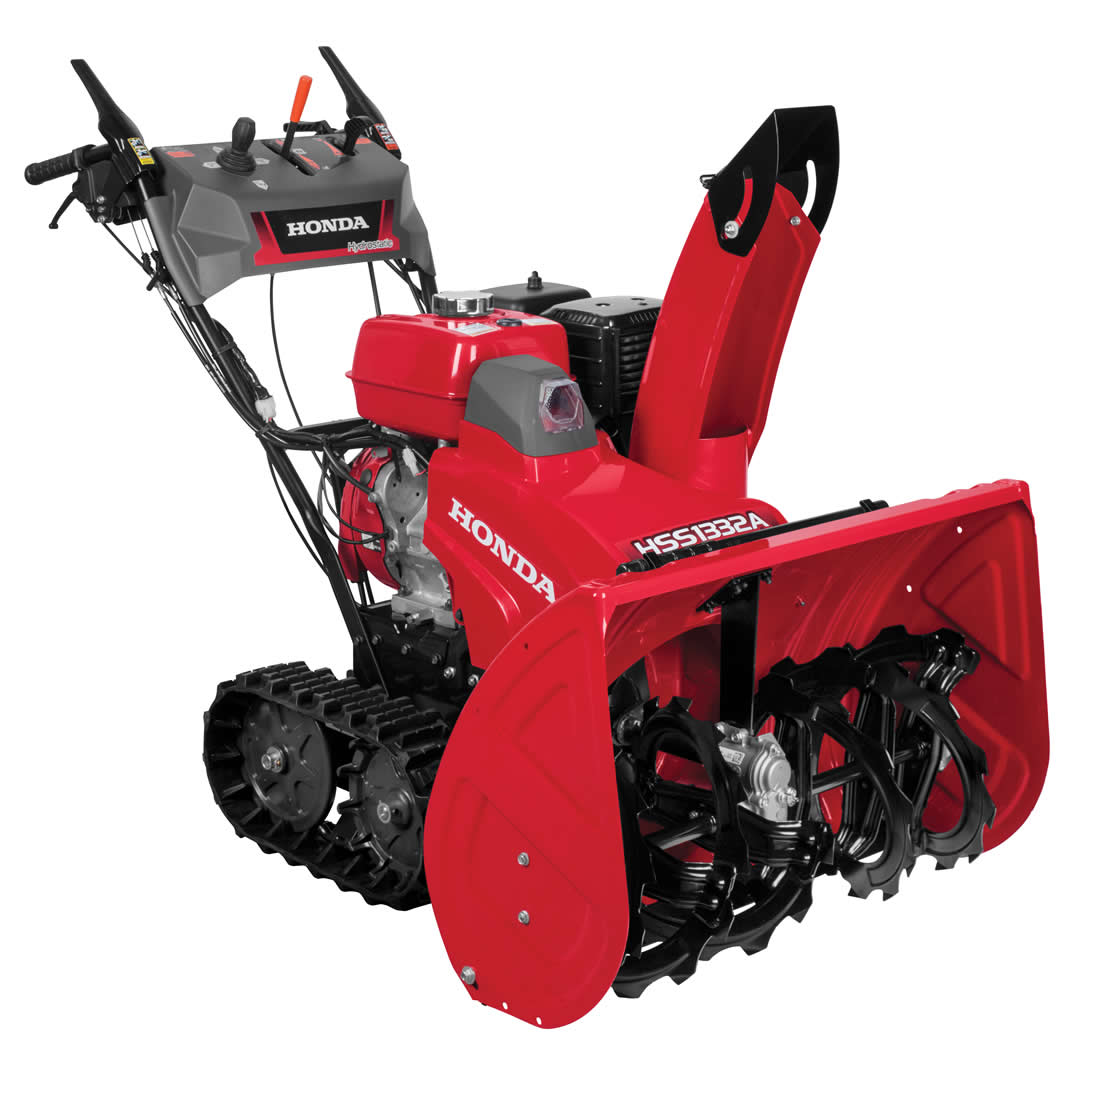 Picture of Honda HSS1332AAT Snow Blower, Gas, 389 cc Engine Displacement, 4-Cycle OHV Engine, 2 -Stage, 56 ft Throw